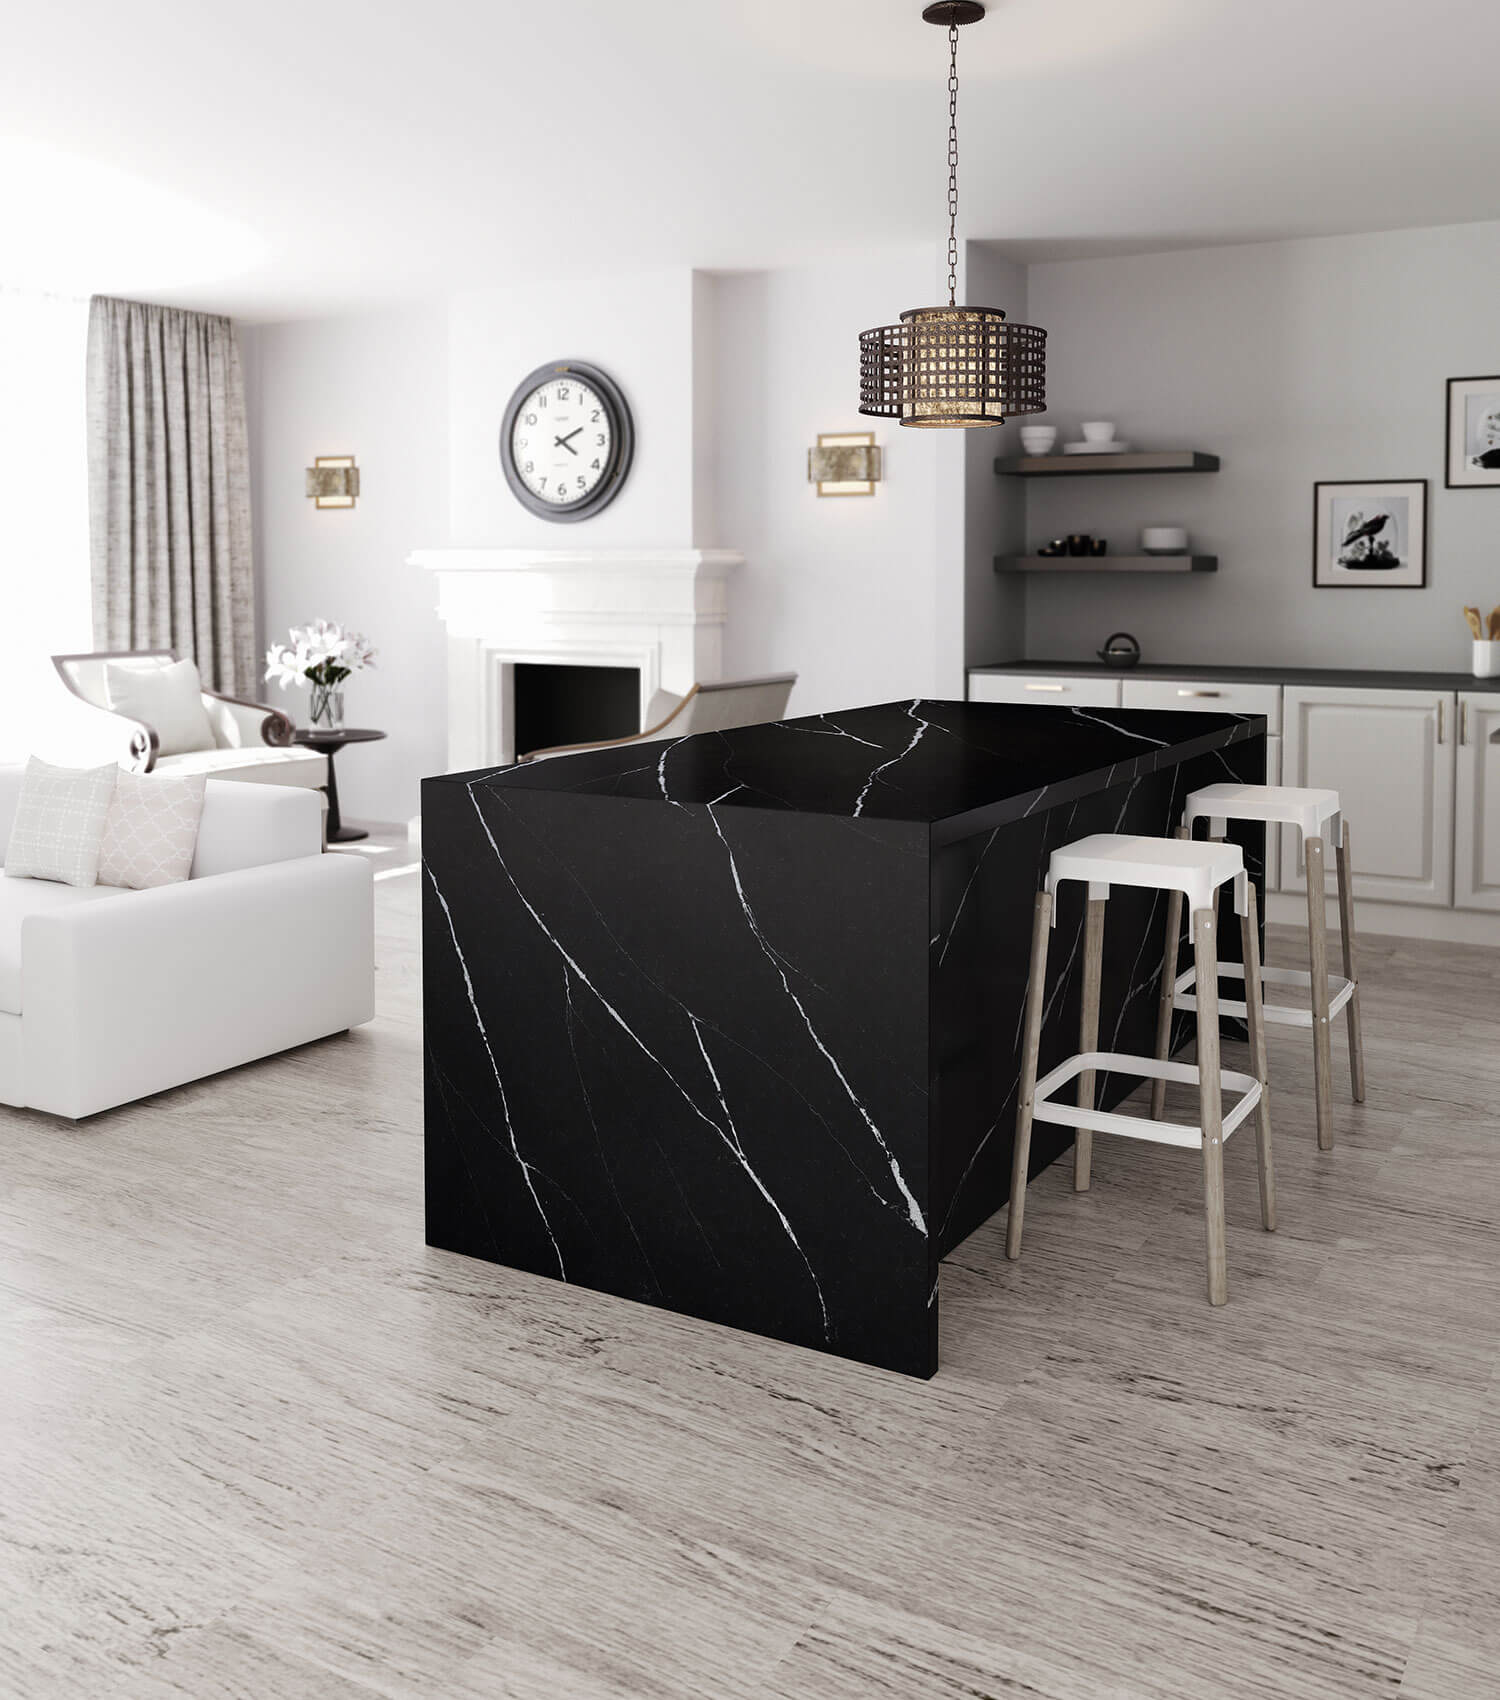 kitchen worktops - Finch's stone and marble - finchgranite com